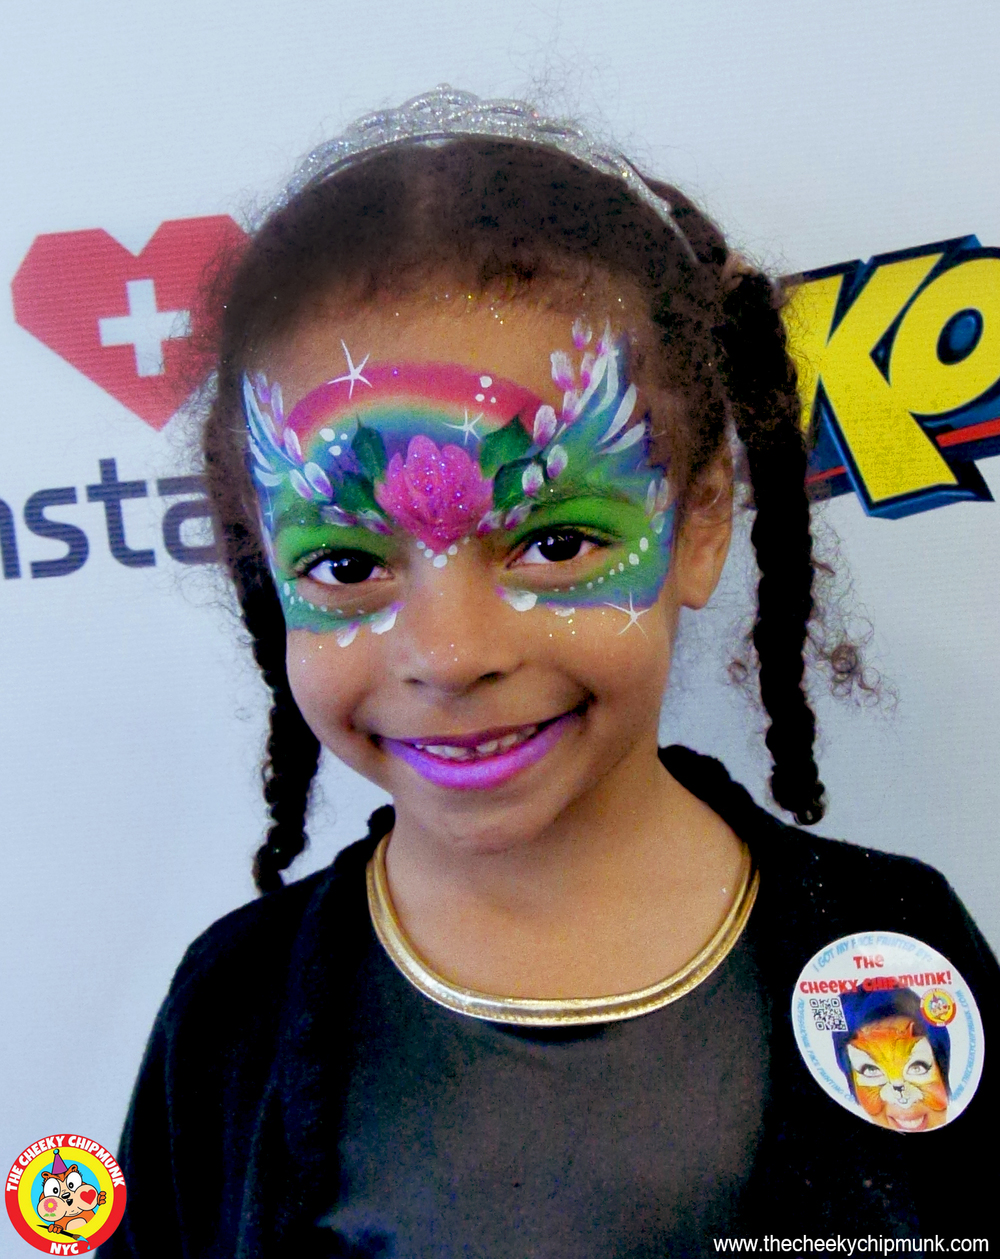 adoptapalooza may 22 2016 aviya fairy.jpg